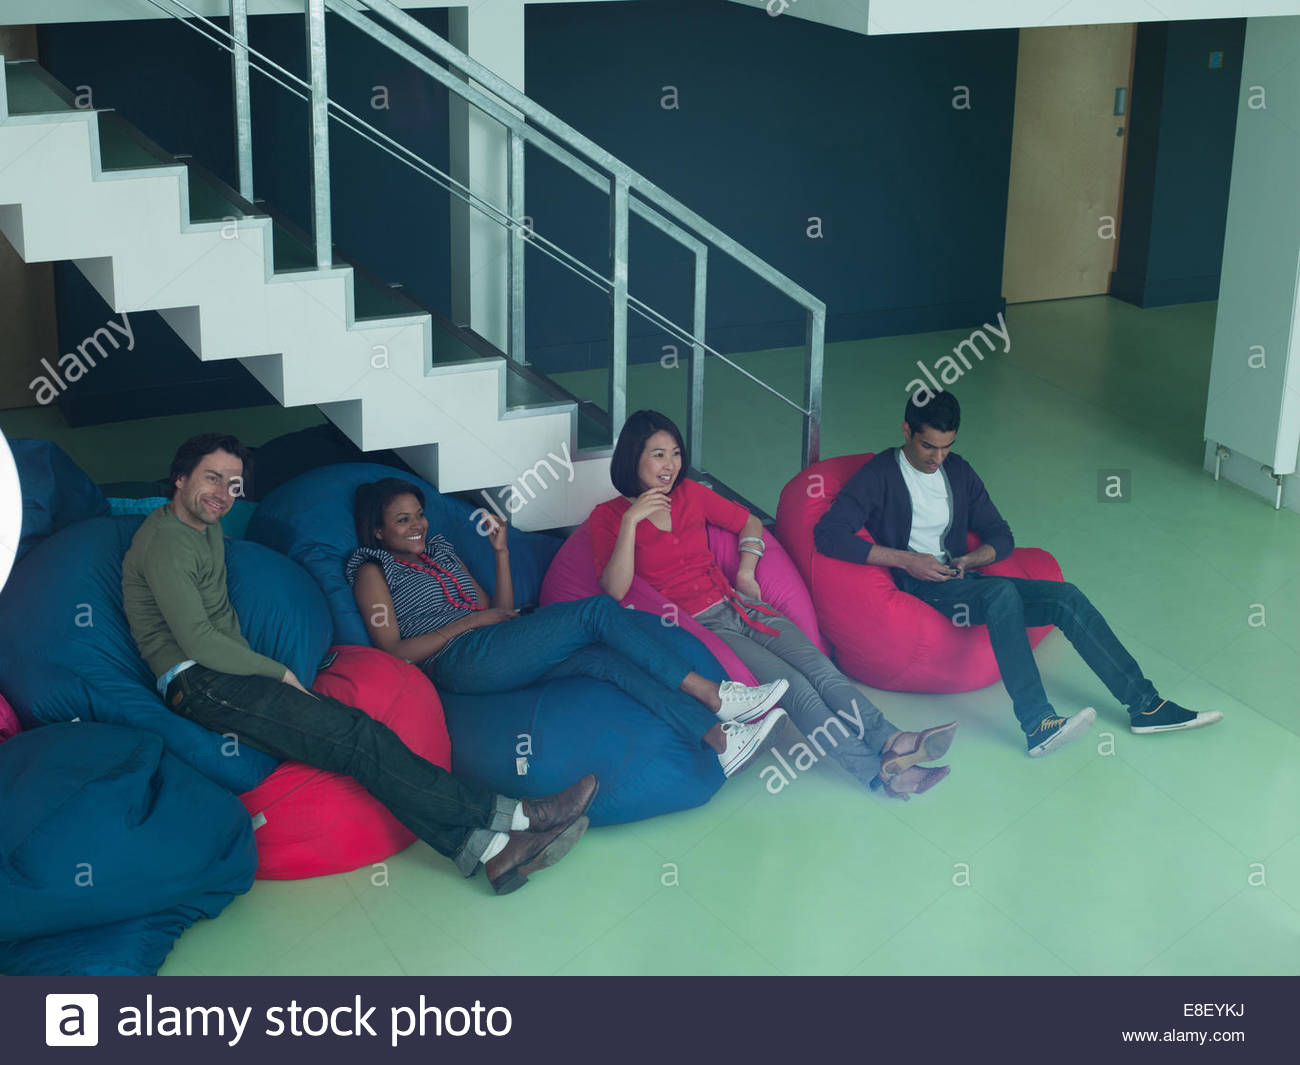 Business people in bean bag chairs - Stock Image